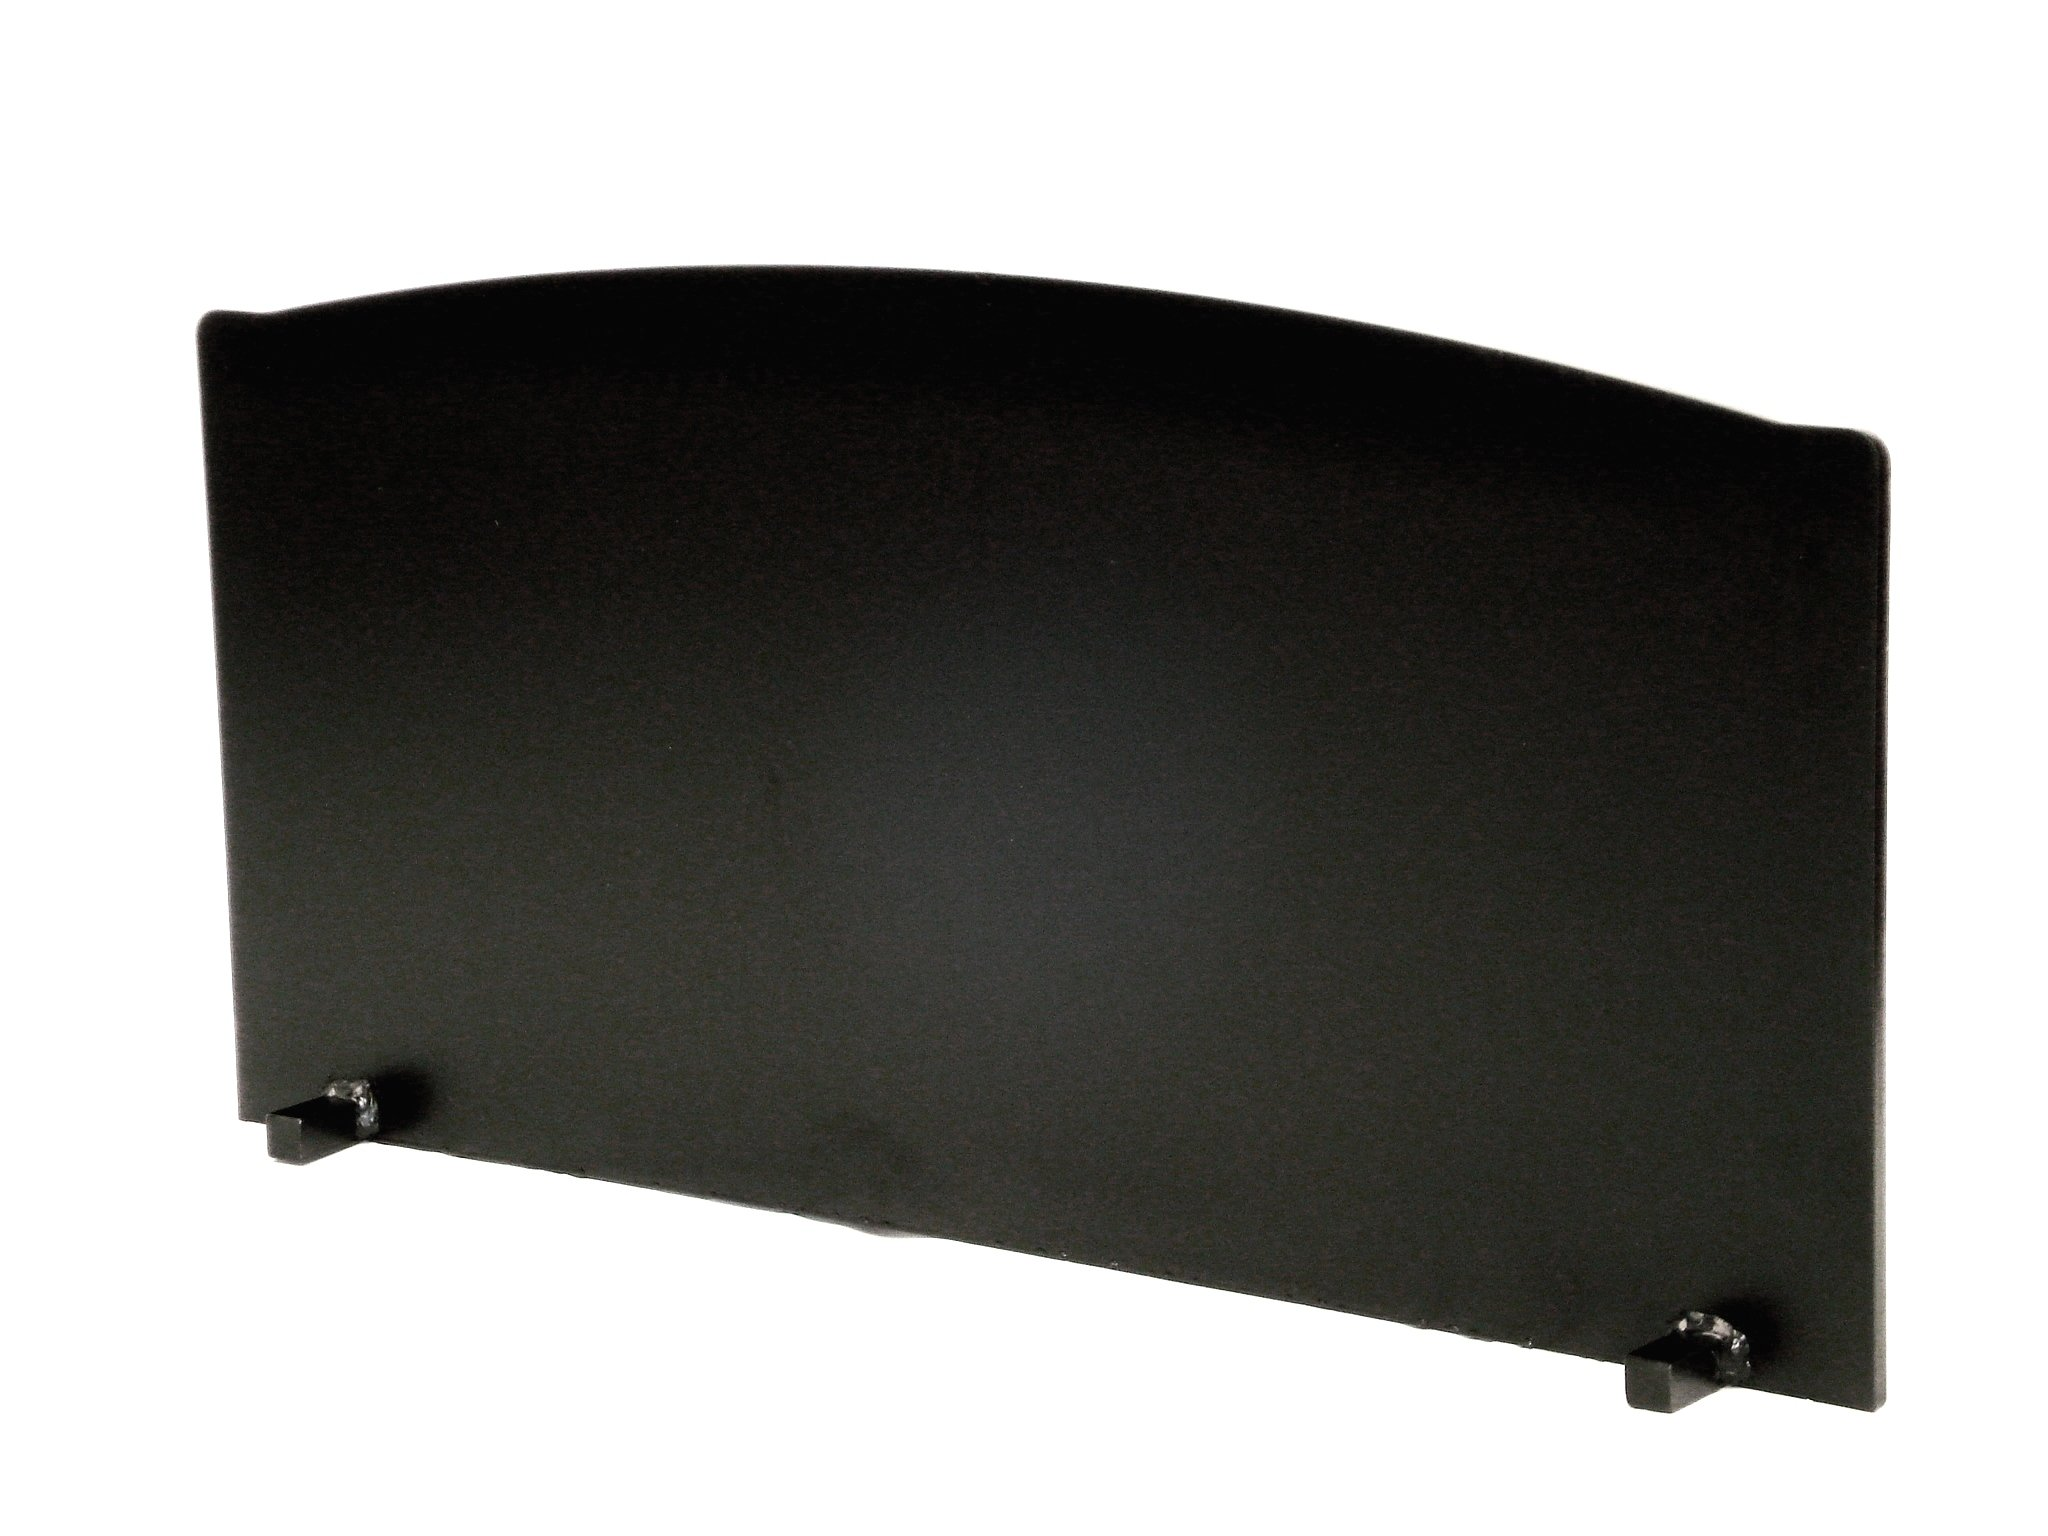 Grate Wall of Fire Model RF-7 Reflective Fireback 31'' Wide, 15 1/2'' Tall. by Grate Wall of Fire